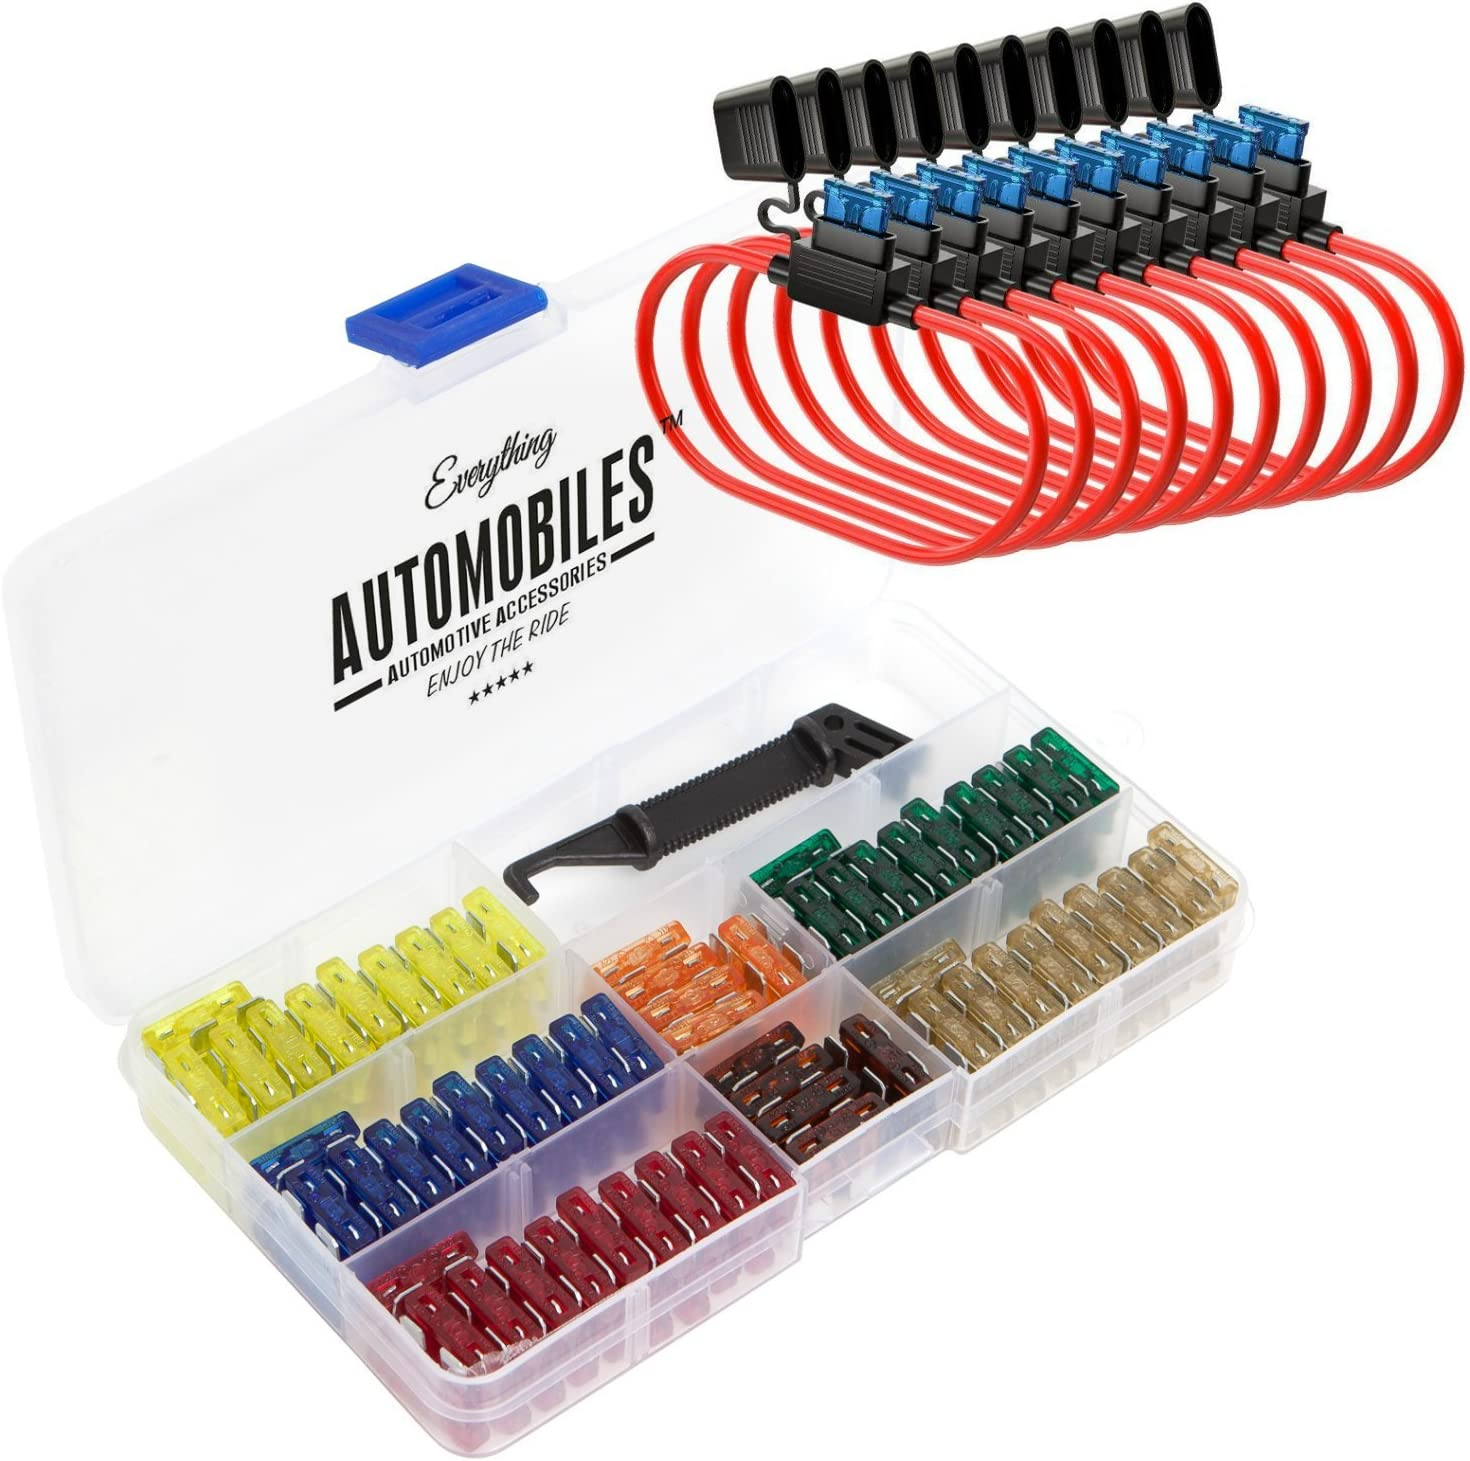 Everything Automobiles, 120 Assorted Fuses with 10 Inline Fuse Holders - Includes Fuse Puller Tool, Great for Use on Cars: Automotive